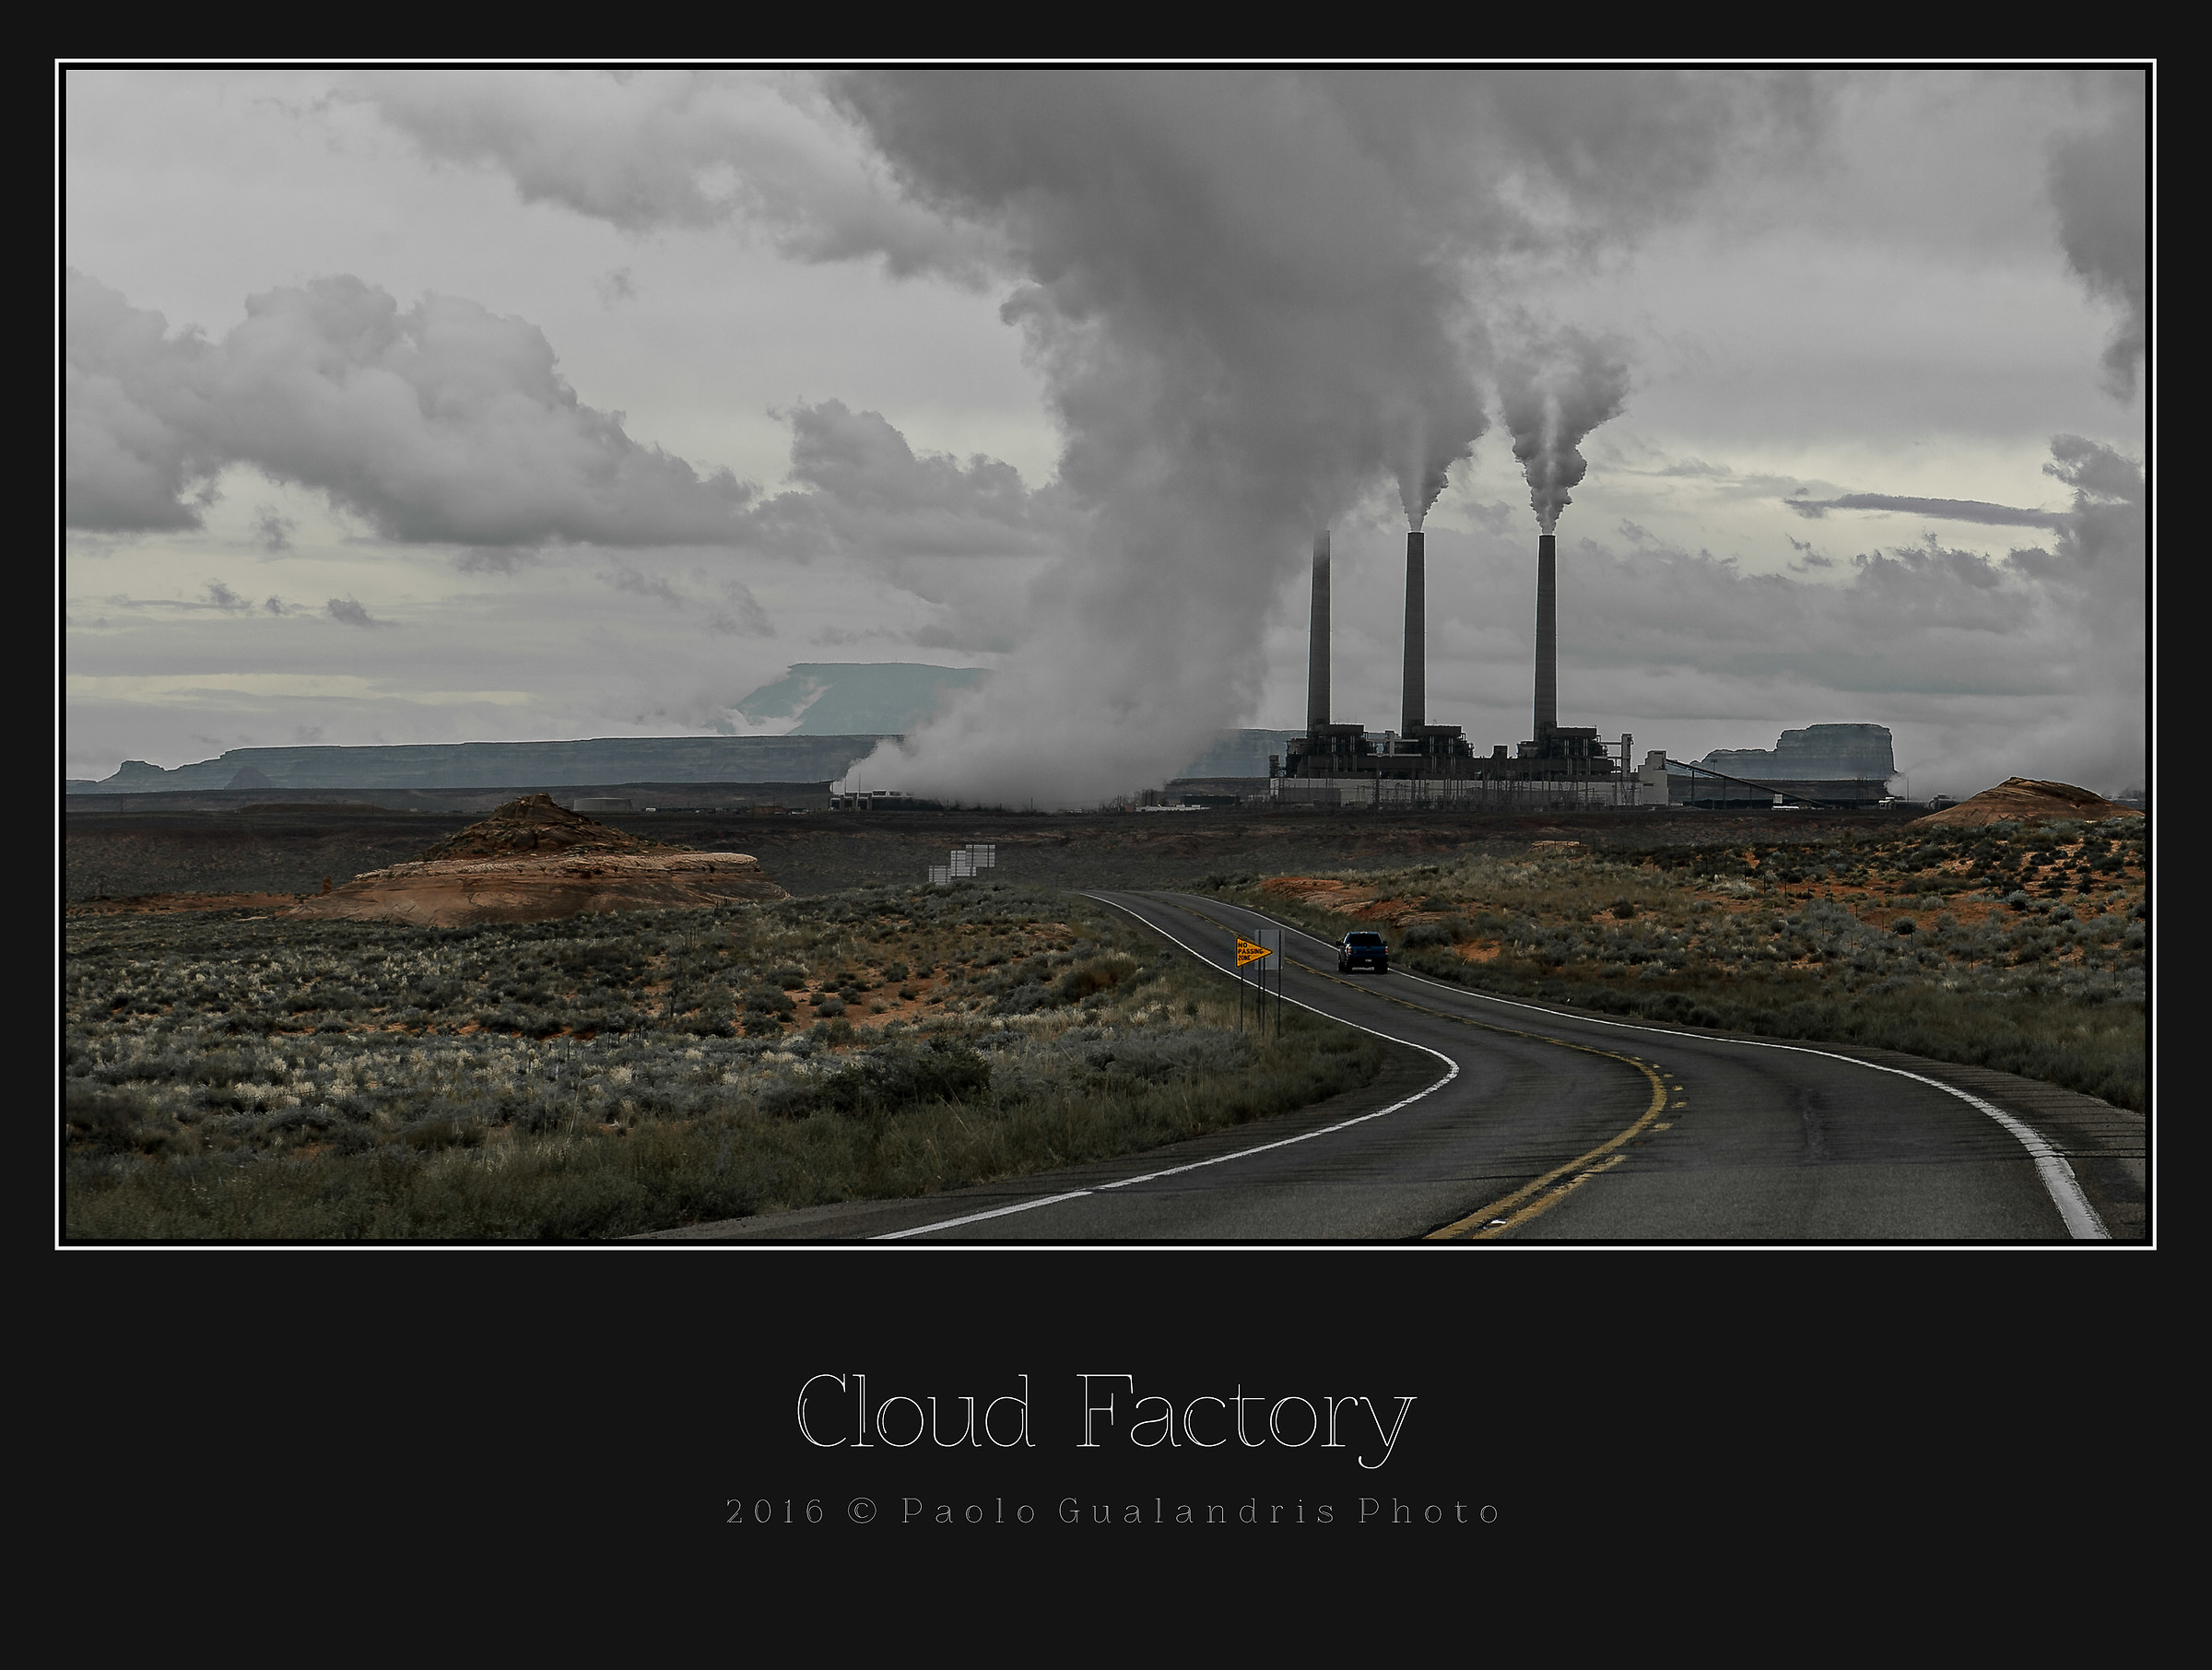 Clouds Factory...